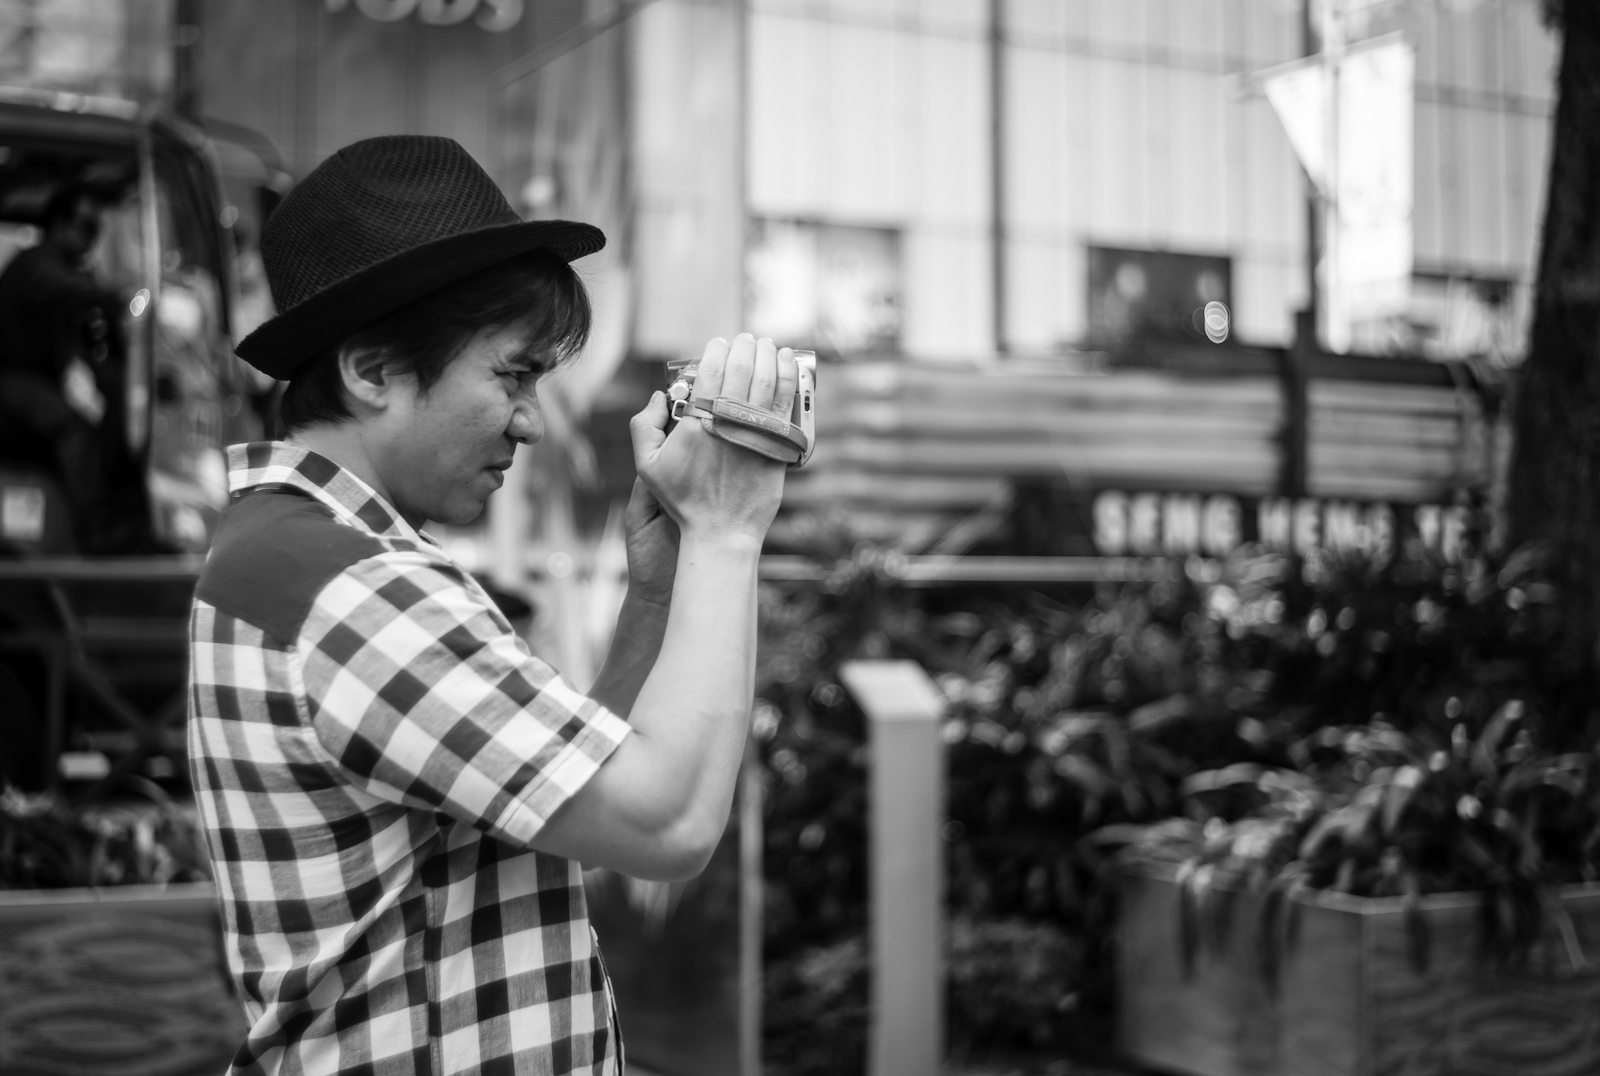 Street photography - Tourist taking a video along Orchard Road